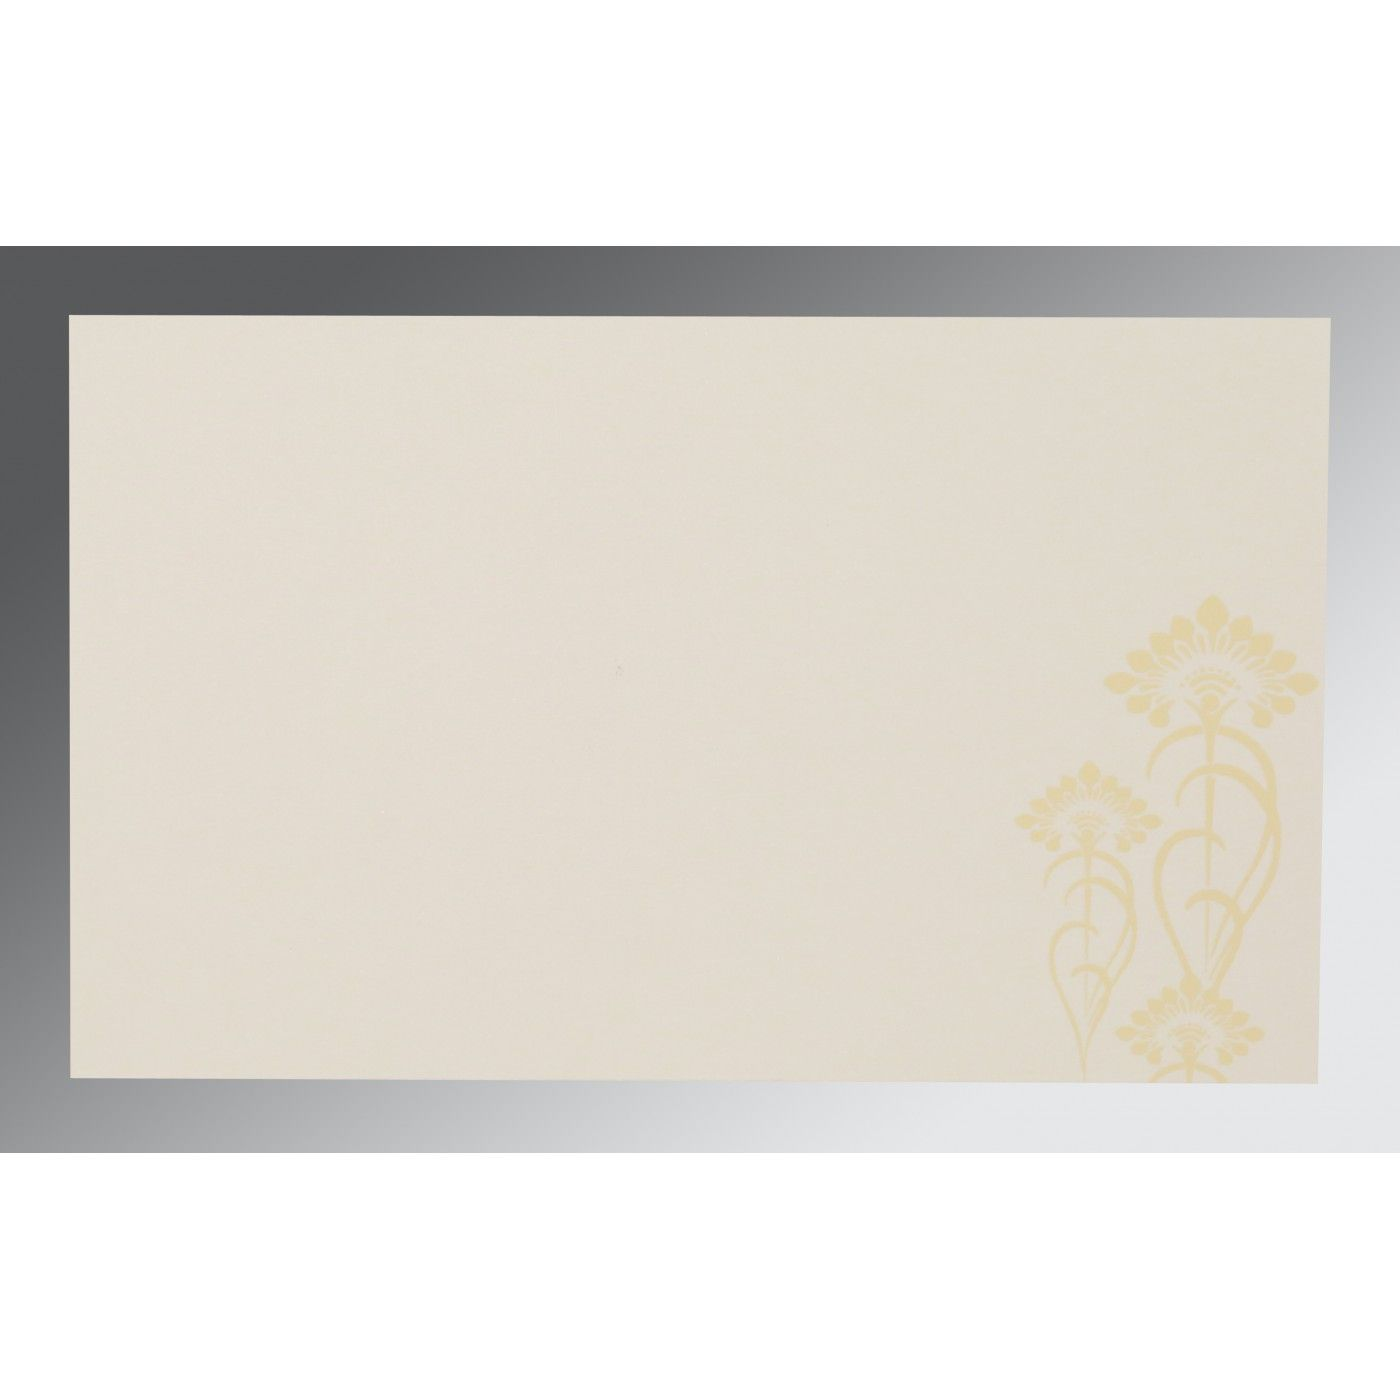 CREAM SHIMMERY SCREEN PRINTED WEDDING CARD : CSO-8239I - IndianWeddingCards